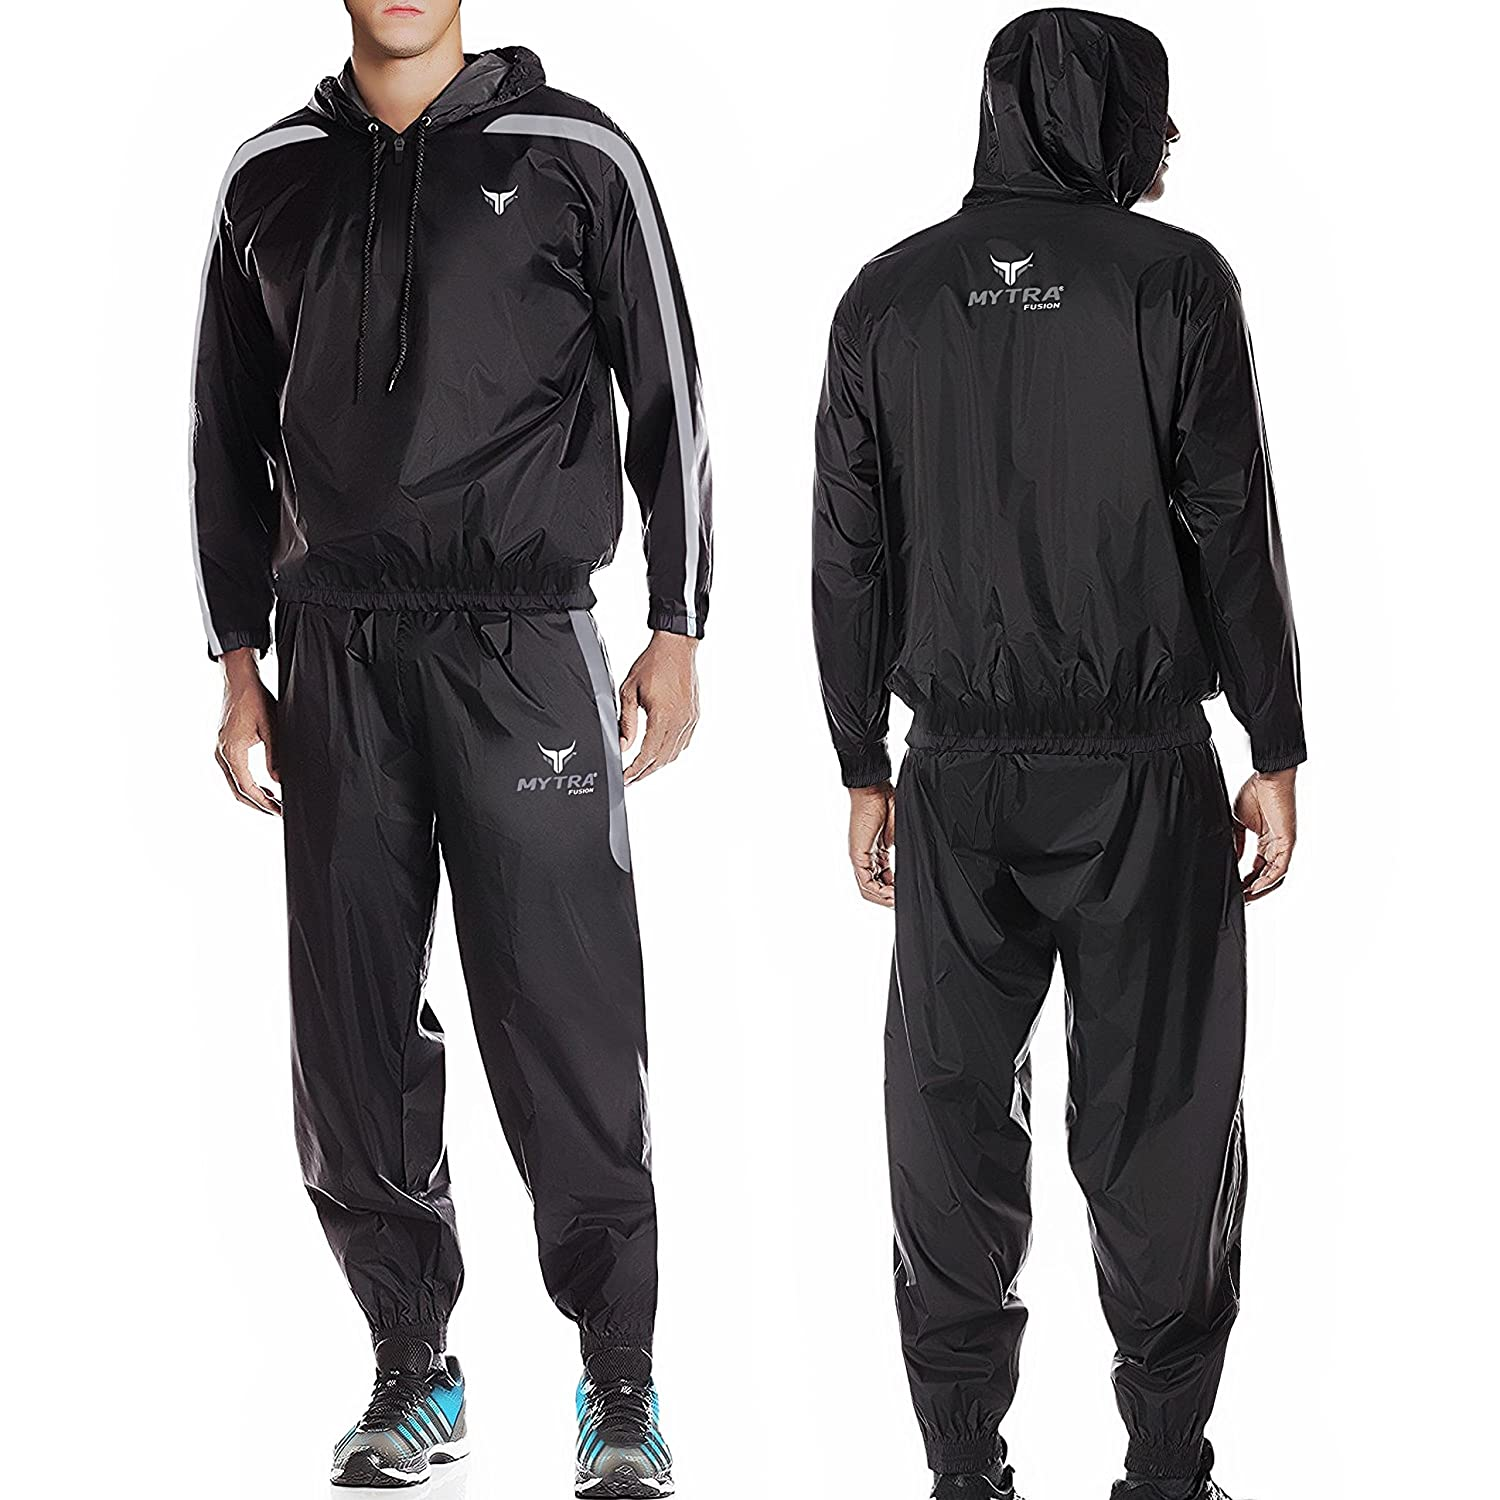 Mytra Fusion Weight Loss Sliming Fitness Sauna Sweat Suit BlackGrey